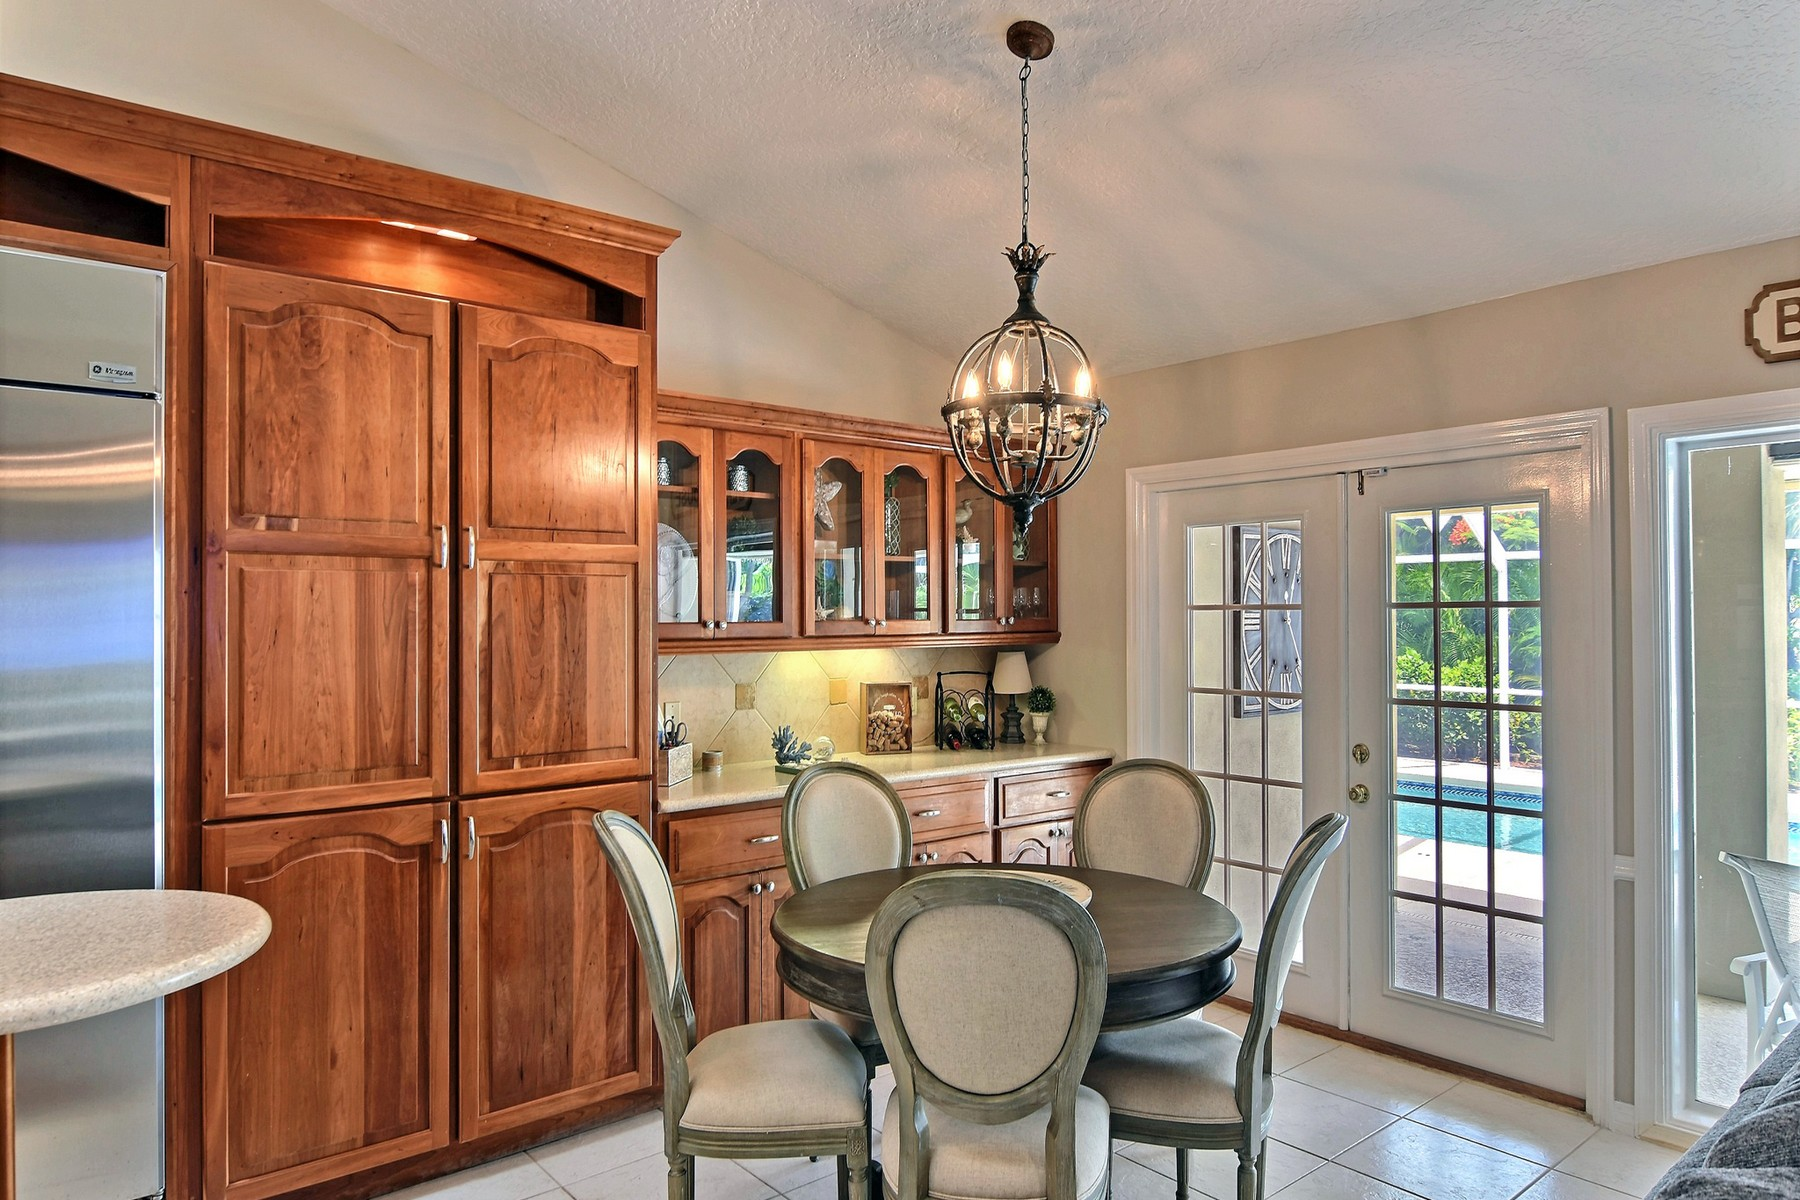 Additional photo for property listing at Boats, Jet Skis, Swimming, and Ooooooh, This Home! 260 Sea Gull Avenue Vero Beach, Florida 32960 United States